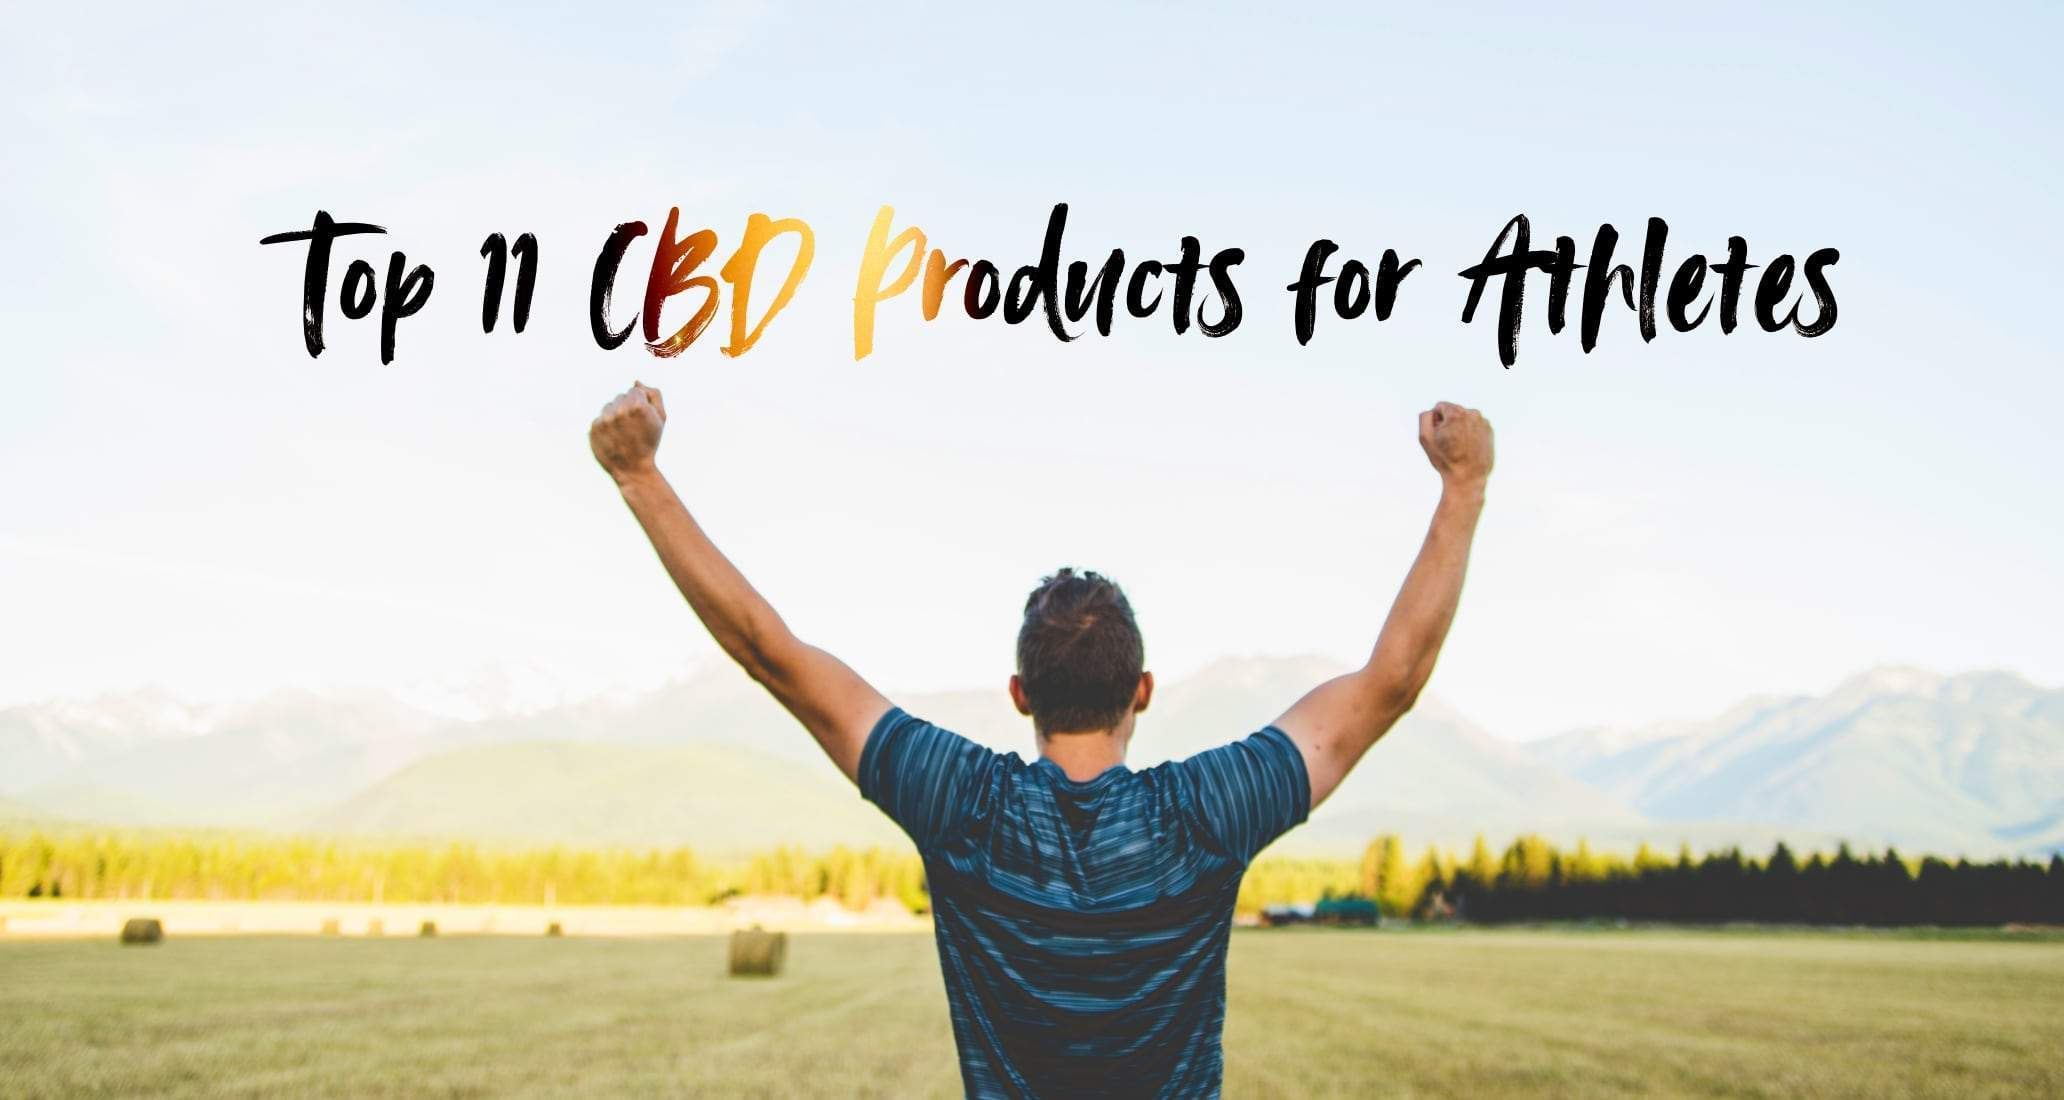 Top 11 CBD Products for Athletes | From real world testing by Feed Athletes